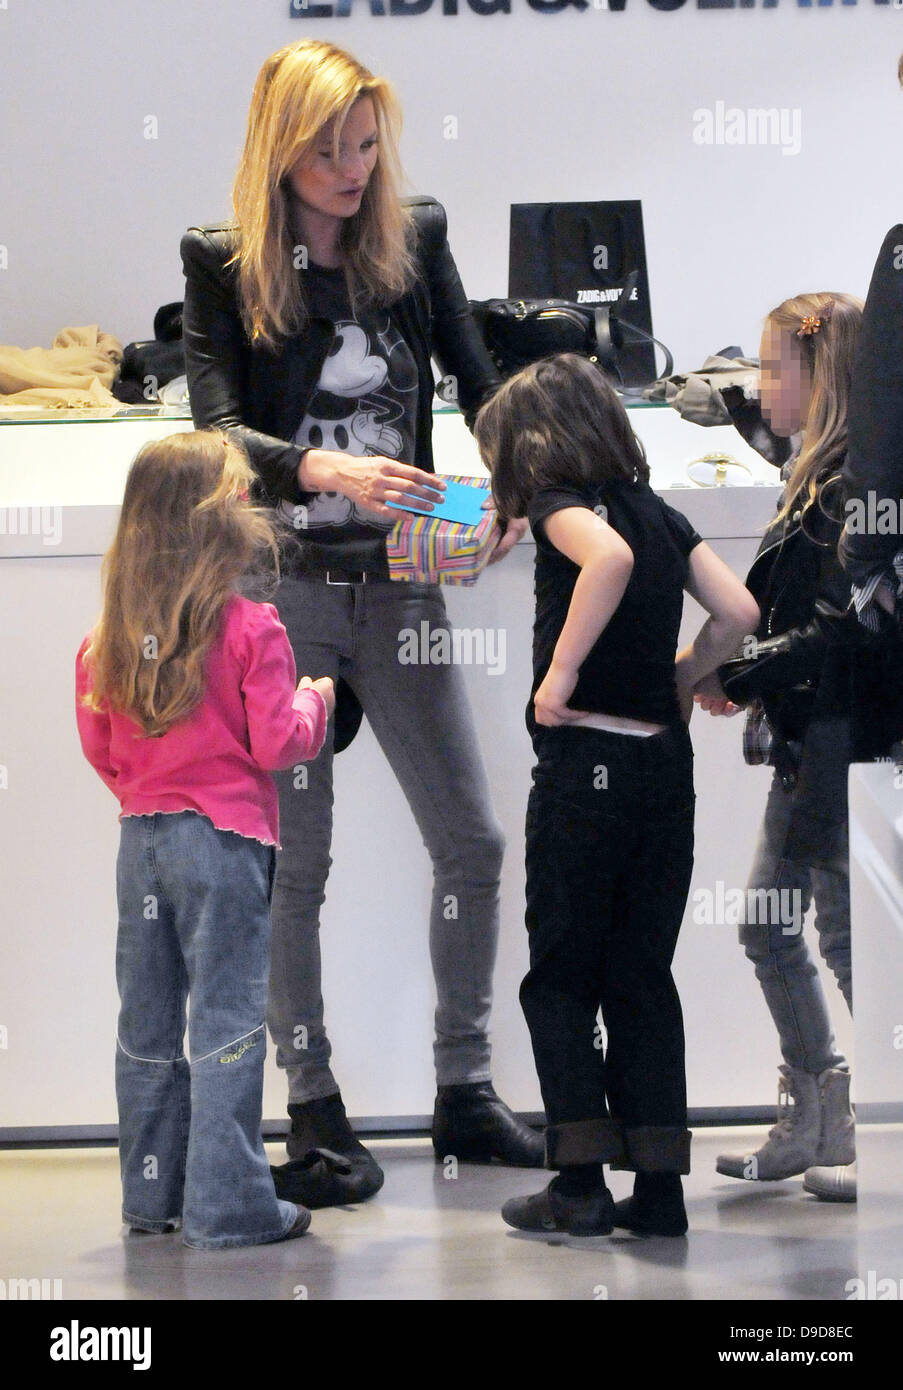 Kate Moss shopping with her daughter Lila Grace and Lila's friends at Zadig & Voltaire in Central London - Stock Image